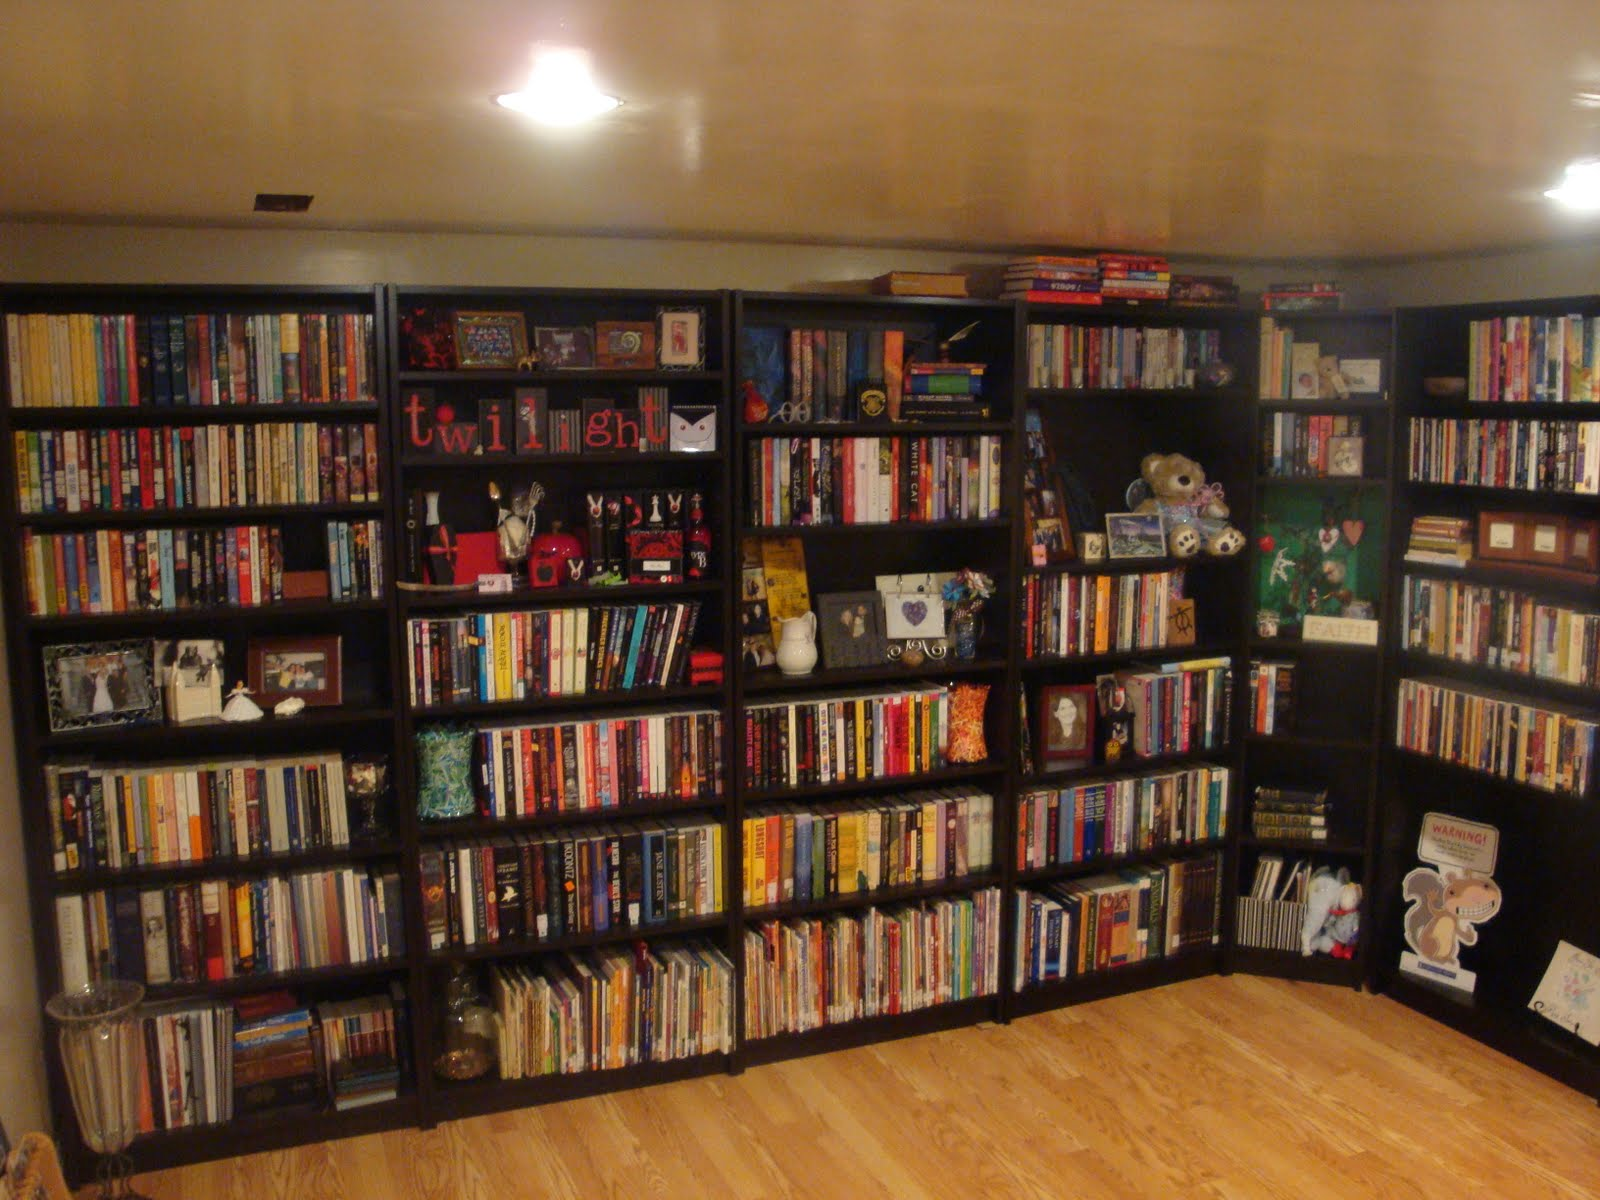 Very Impressive portraiture of another bookshelf or give away some books. Mmmm .another bookshelf  with #A73924 color and 1600x1200 pixels